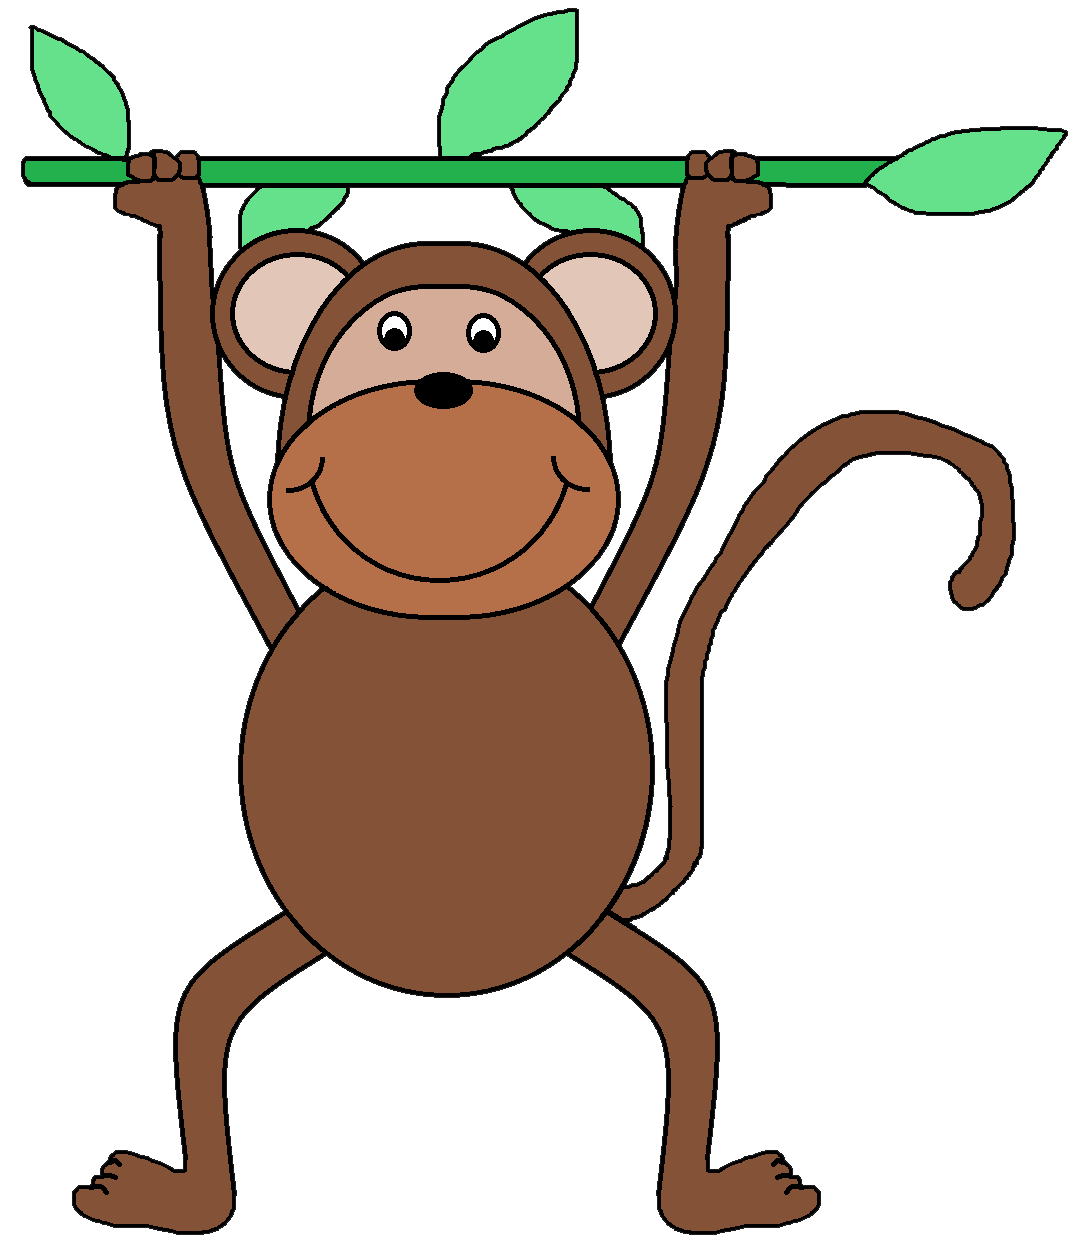 hight resolution of displaying monkey face clipart clipartmonk free clip art images